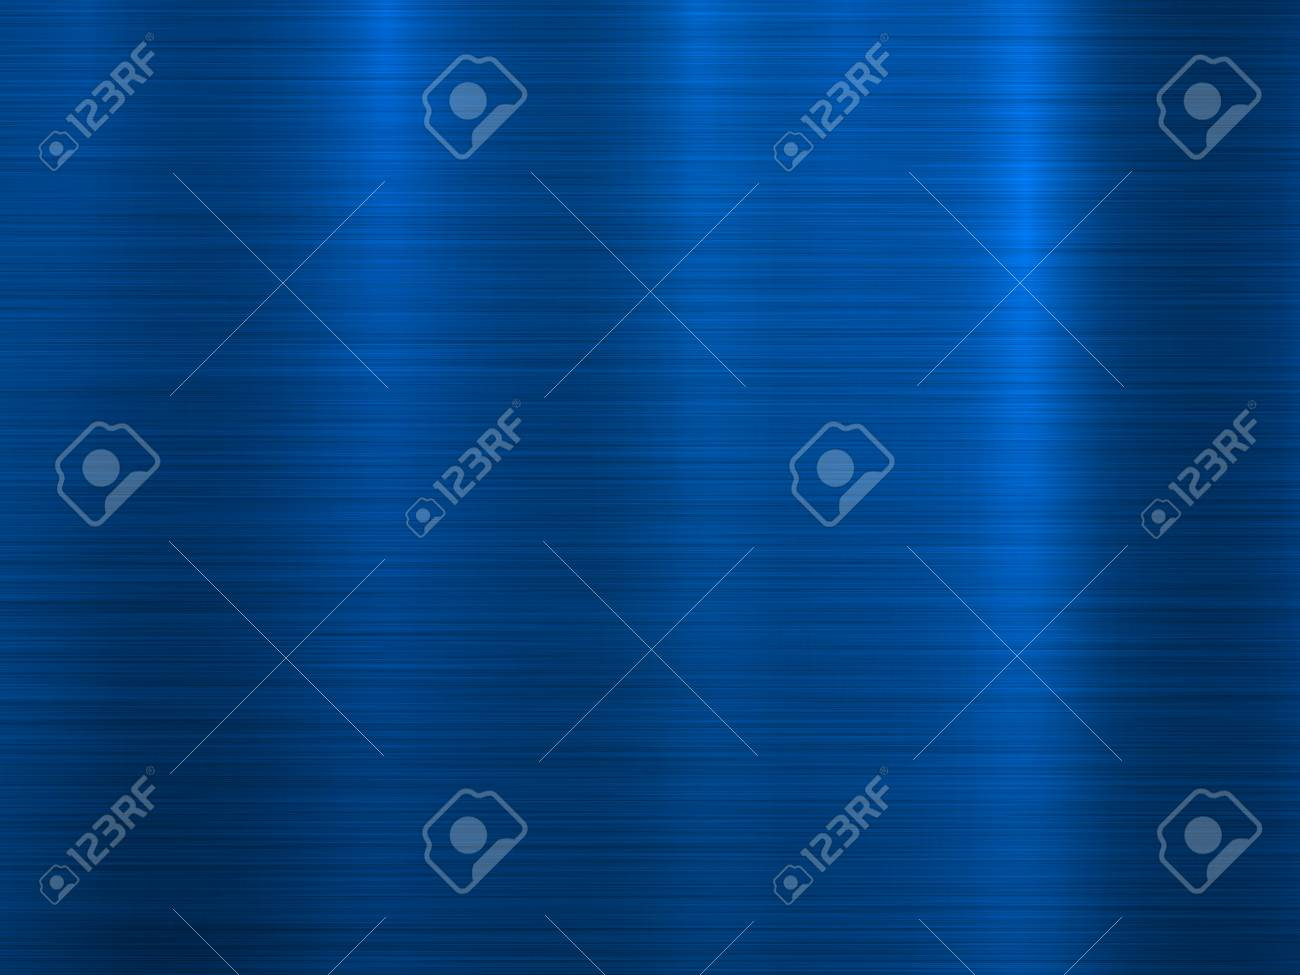 Blue metal technology horizontal background with polished, brushed texture, chrome, silver, steel, aluminum for design concepts, wallpapers, web, prints and interfaces. Vector illustration. - 99131492